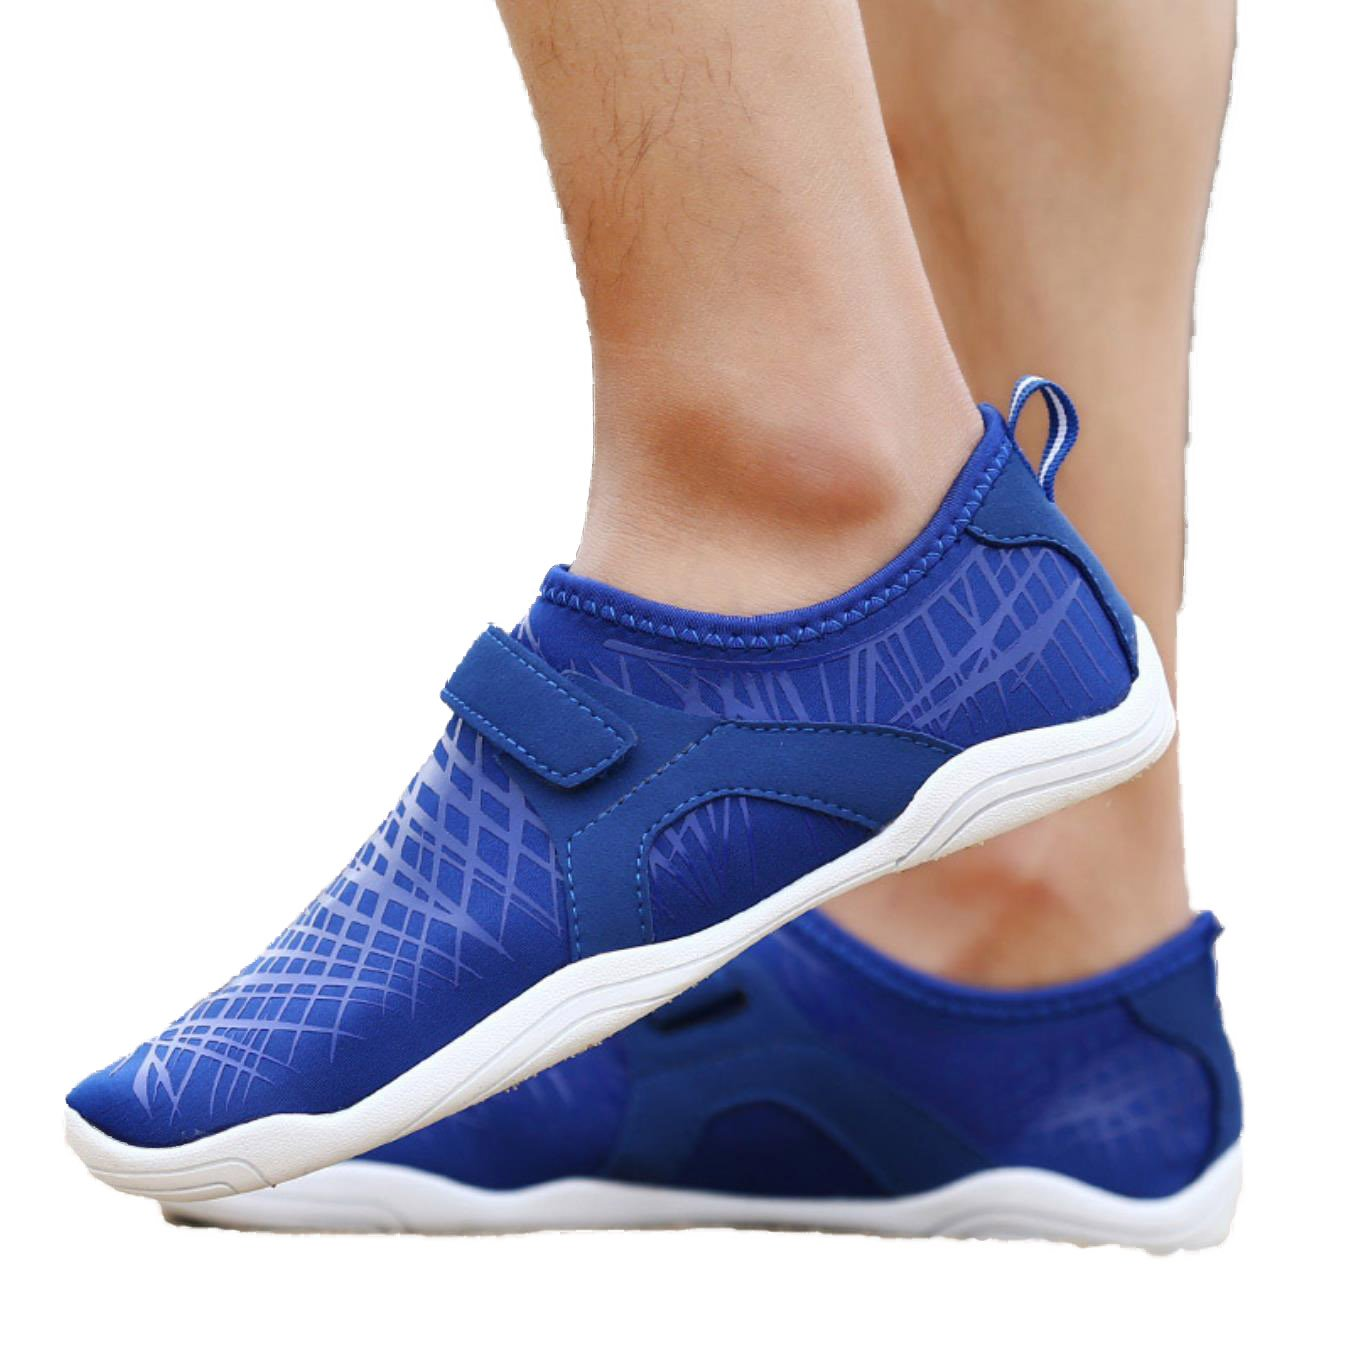 923a828814a5 Amazon.com  Men s Women s Outdoor Summer Sneaker Swimming Diving Fast Dry  Wading Barefoot Beach Shoes Aqua Water Skin Shoes  Clothing